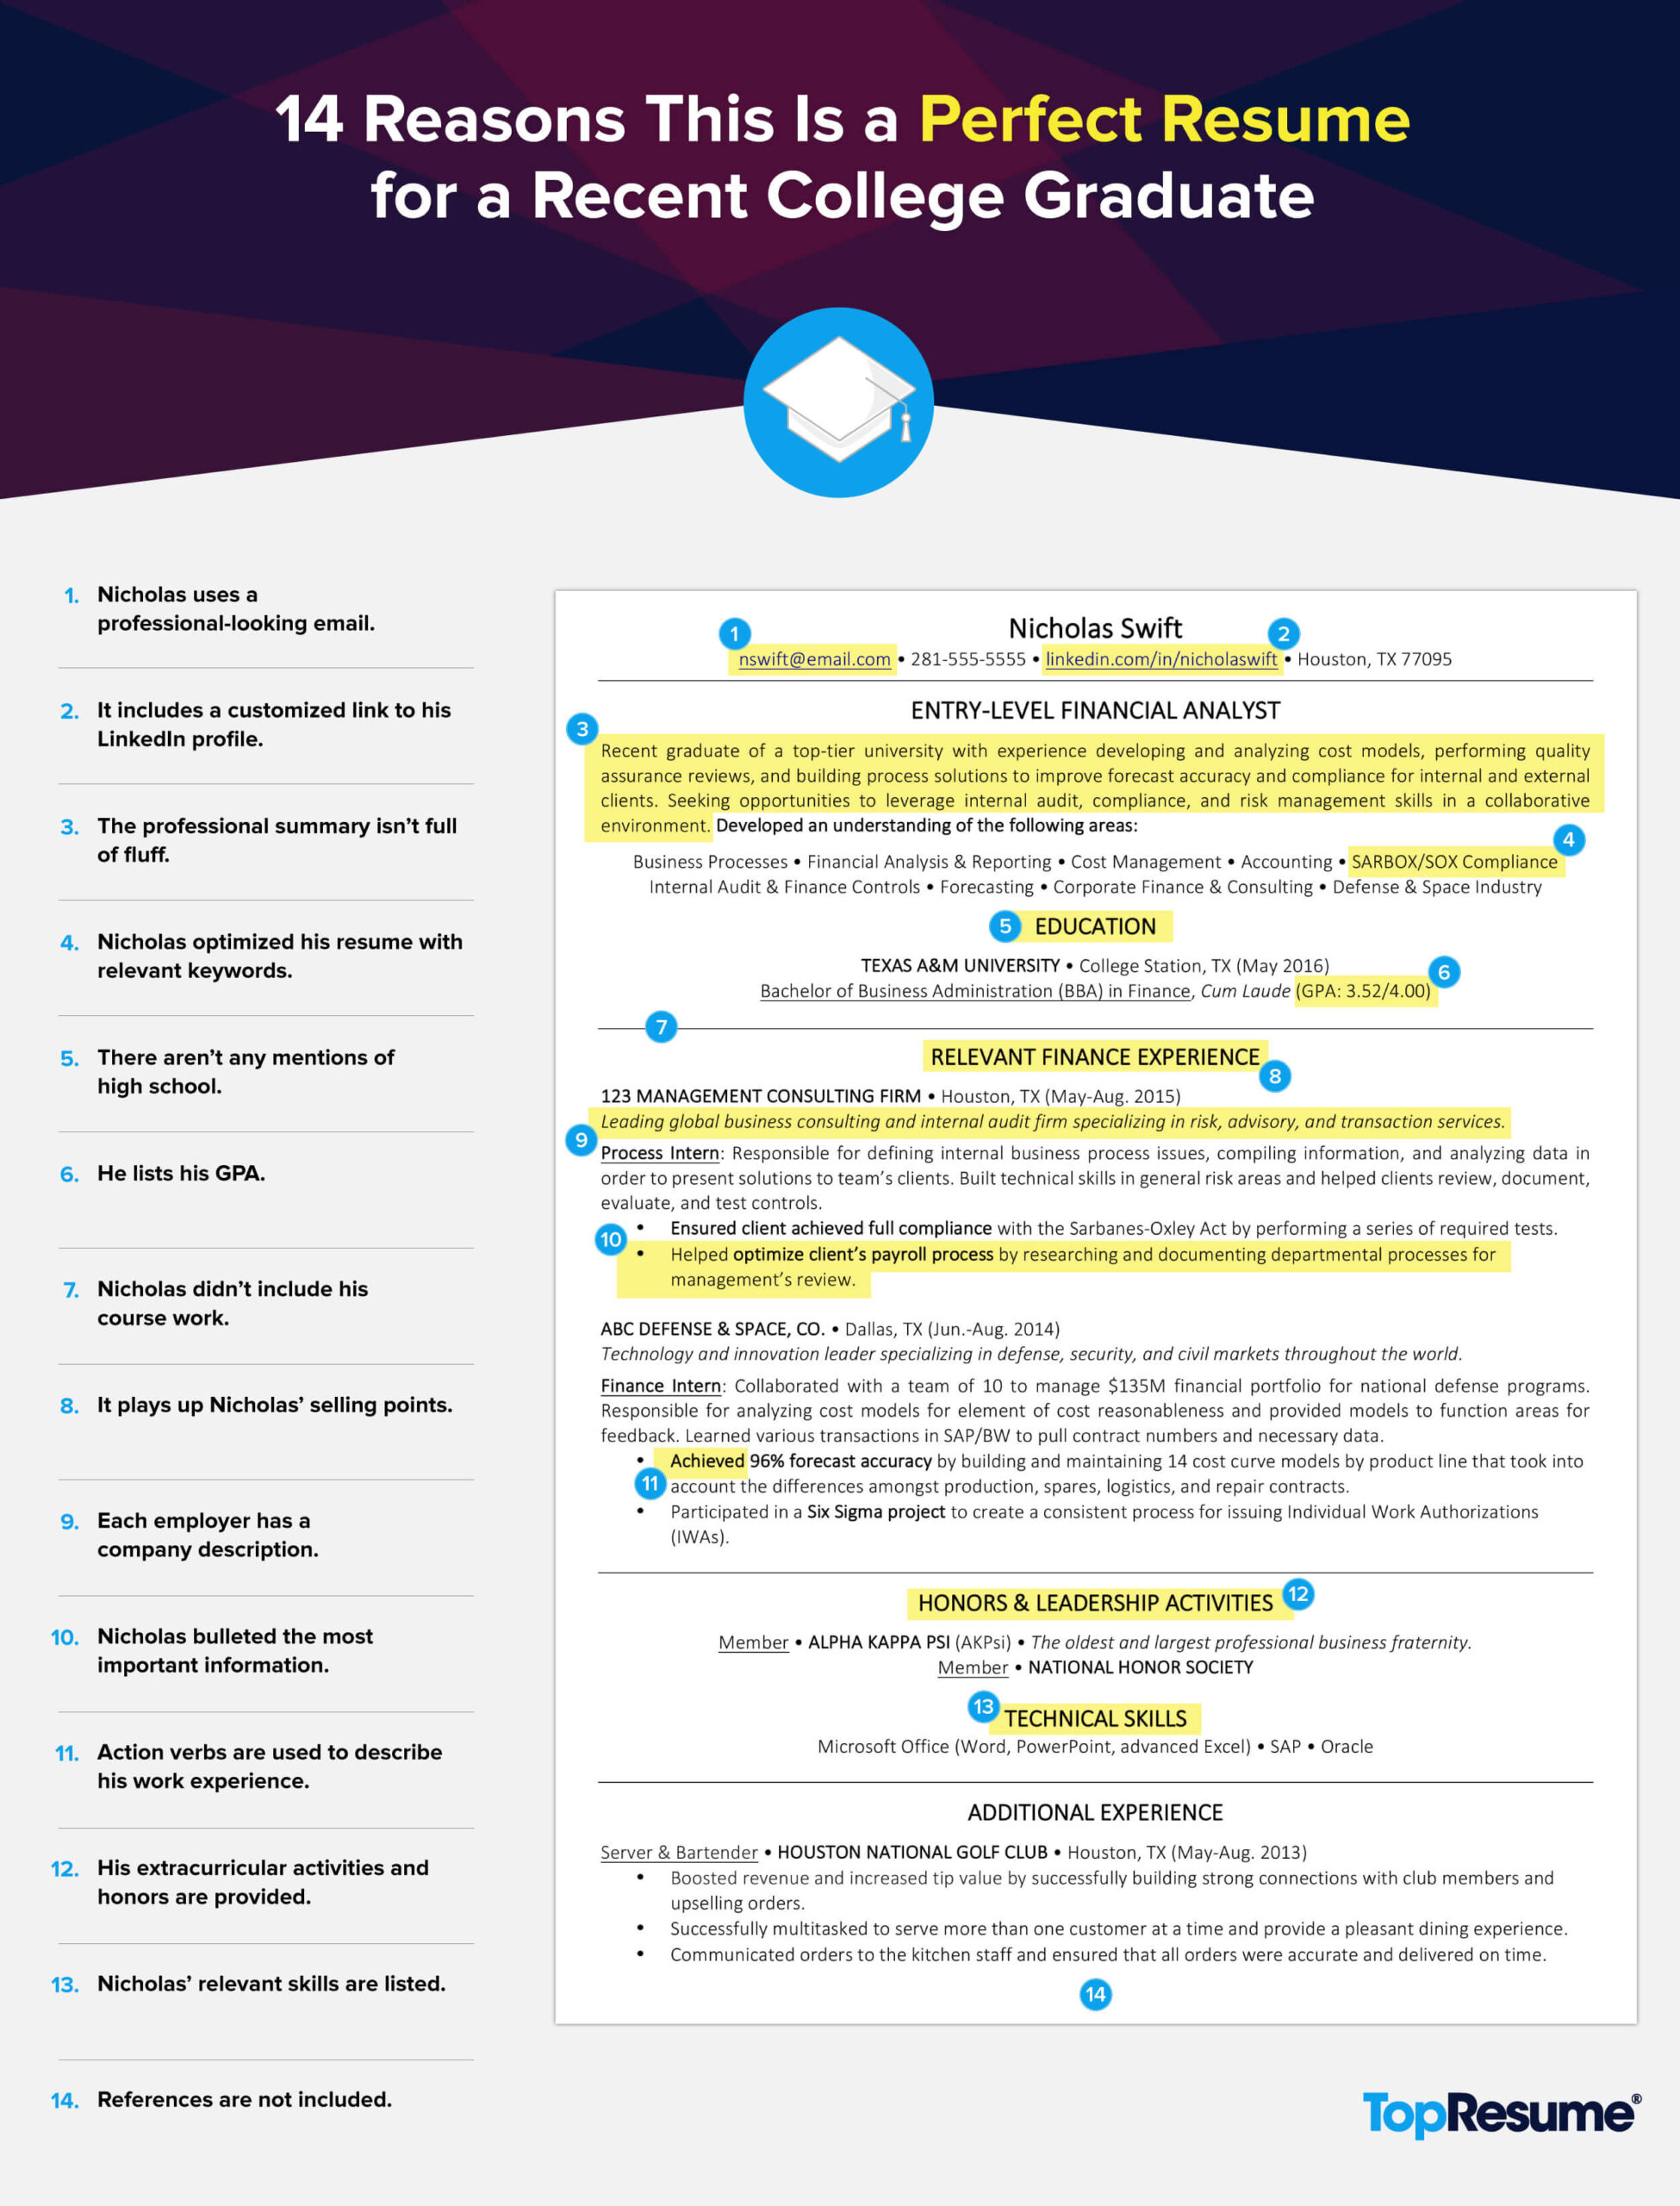 reasons this is perfect recent college graduate resume topresume sample for Resume Sample Resume For Recent College Graduate